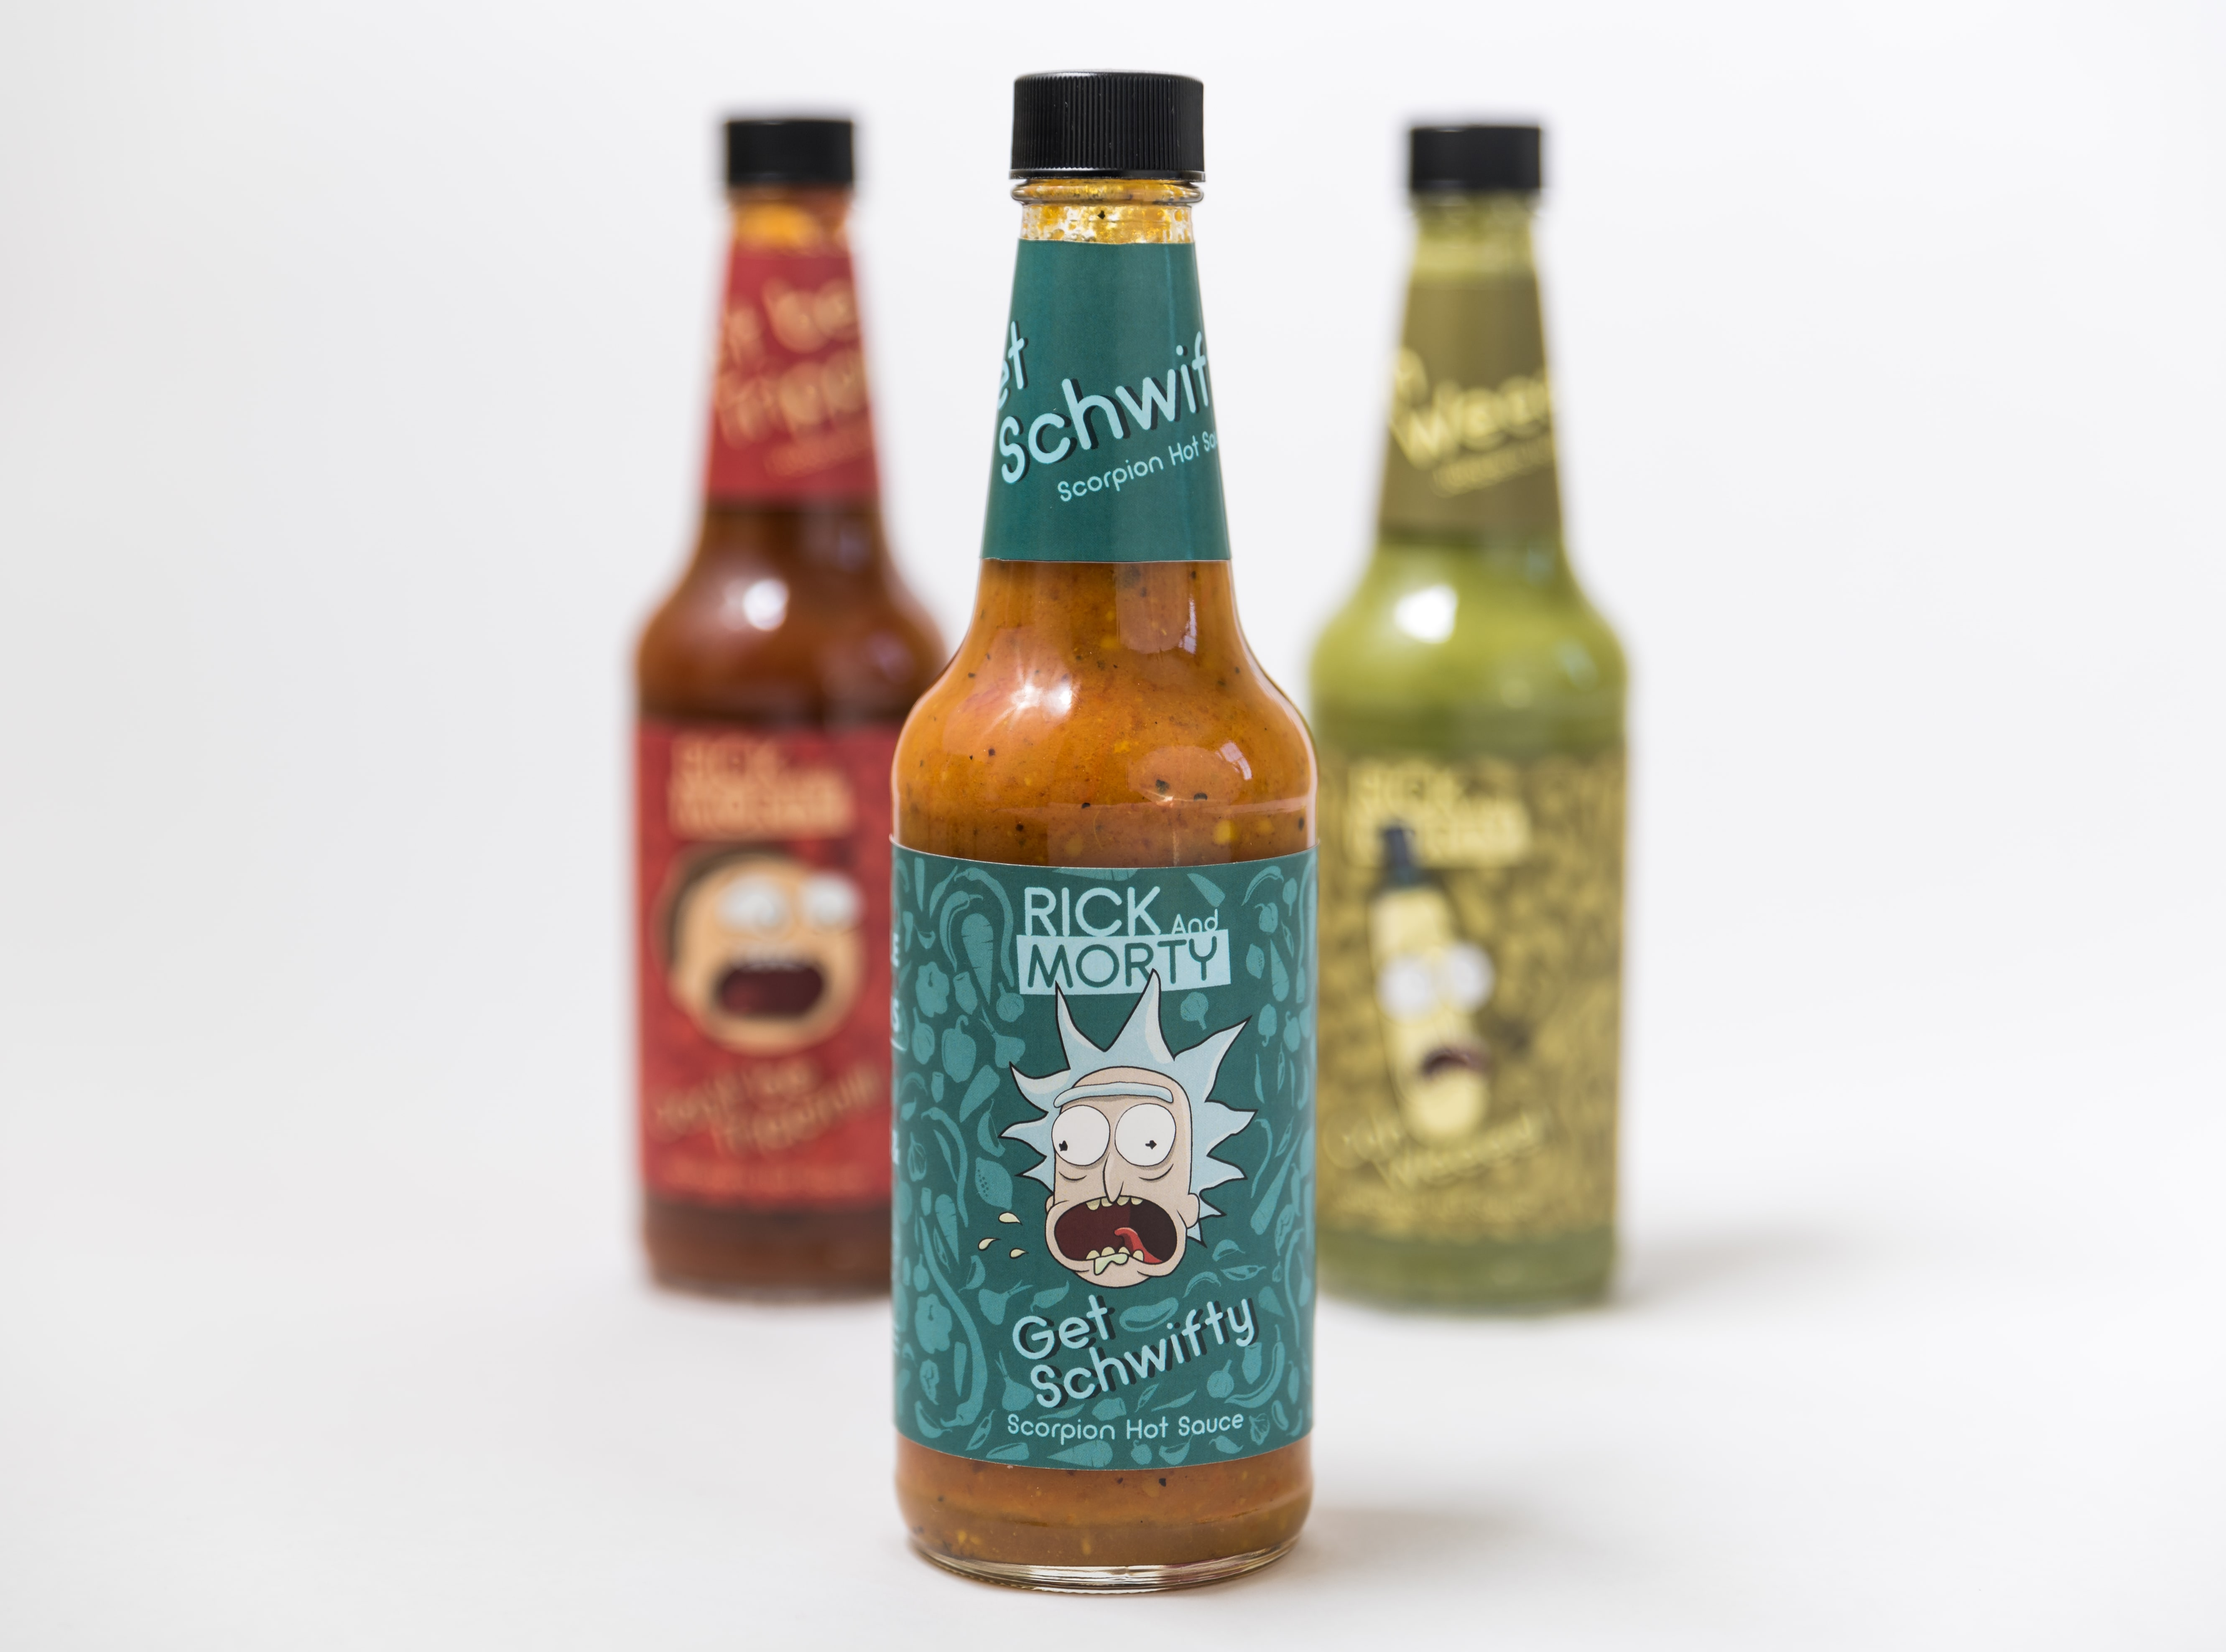 """Three hotsauce bottles while focusing on the front bottle that features Rick """"Get Schwifty"""" hotsauce."""